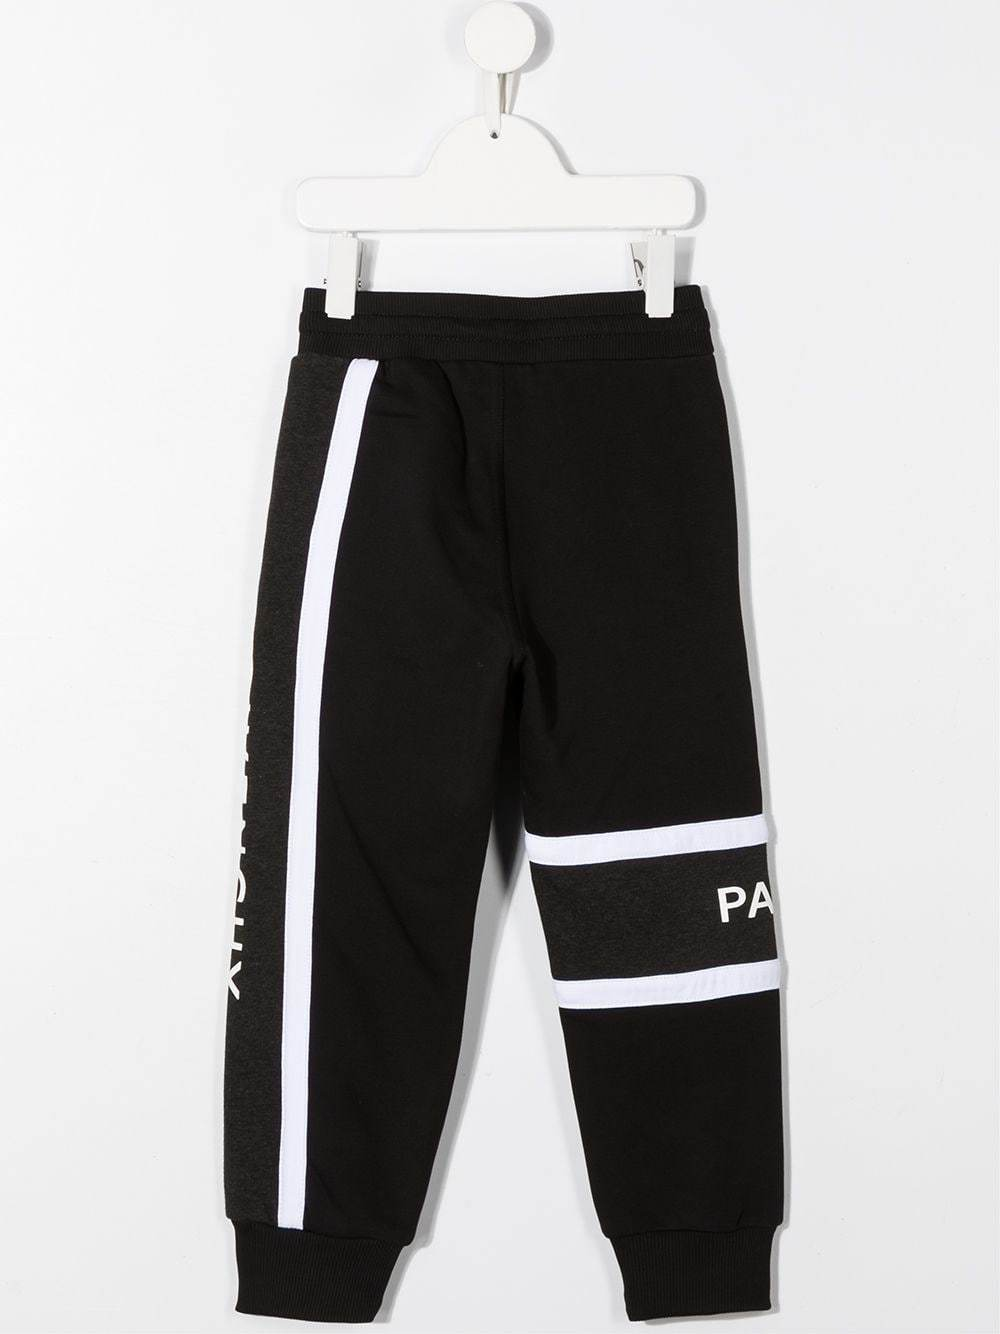 GIVENCHY KIDS Stripe Logo Sweatpants Black